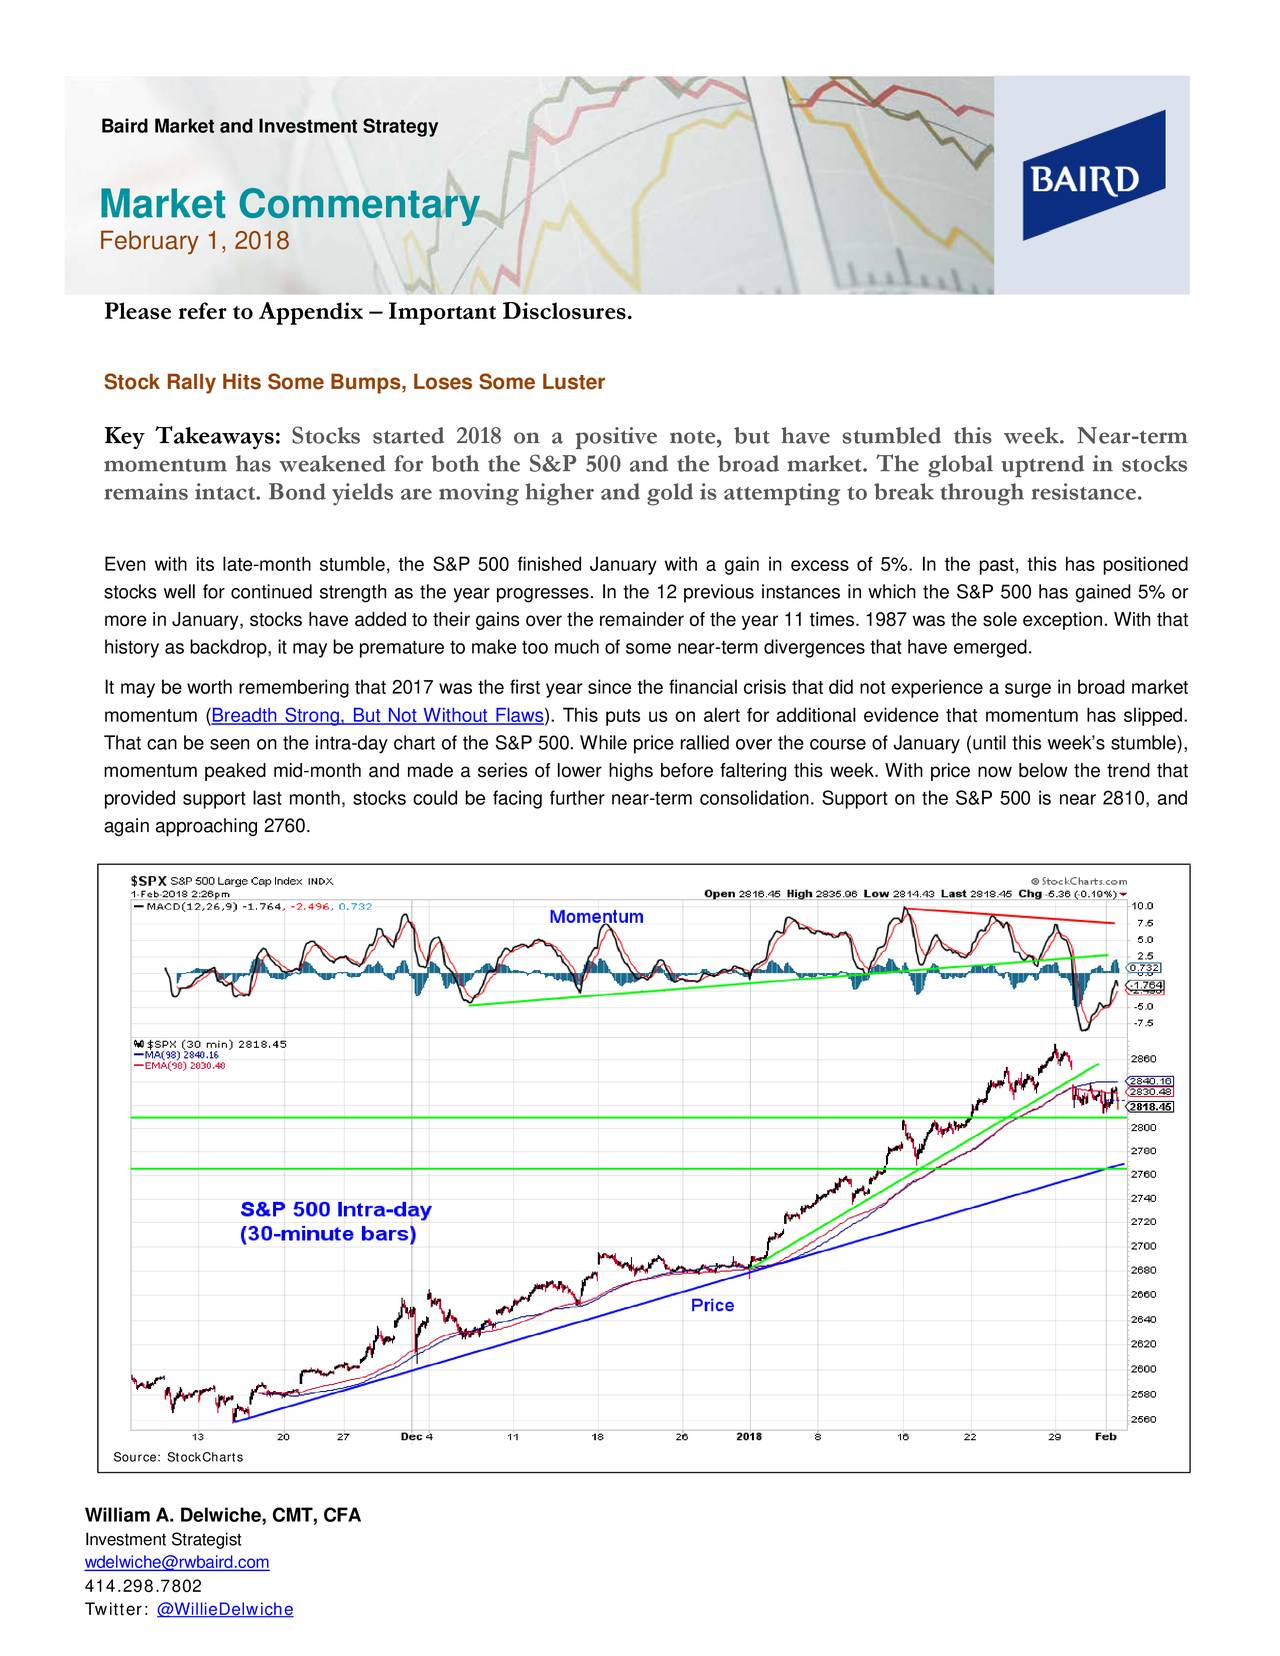 Market Commentary February 1, 2018 Please refer to Appendix – Important Disclosures. Stock Rally Hits Some Bumps, Loses Some Luster Key Takeaways : Stocks started 2018 on a positive note, but have stumbled this week. Near -term momentum has weakened for both the S&P 500 and the broad market. The global uptrend in stocks remains intact. Bond yields are moving higher and gold is attempting to break through resistance. Even with its late-month stumble, the S&P 500 finished January with a gain in excess of 5%. In the, this has positioned stocks well for continued strength as the year progresses. In the 12 previous instance s in which the S&P 500 has gained 5% or more in January, stocks have added to their gains over the remainder of the year 11 times. 1987 was the sole exception. With that history as backdrop, it may be premature to make too much of some near -term divergences that have emerged. It may be worth remembering that 2017 was the first year since the financial crisis that did not experience a surge in broad market momentum (Breadth Strong, But Not Without Flaws ). This puts us on alert for additional evidence that momentum has slipped. That can be seen on the intra- day chart of the S&P 500. While price rallied over the course of January (until this week's stumble), momentum peaked mid-month and made a series of lower highs before faltering this week. With prnow below the trend that provided support last month, stocks could be facing further near -term consolidation. Support on the S&P 500 is near 2810, and again approaching 2760. Source: StockCharts William A. Delwiche, CMT, CFA Investment Strategist wdelwiche@rwbaird.com 414.298.7802 Twitter: @WillieDelwiche